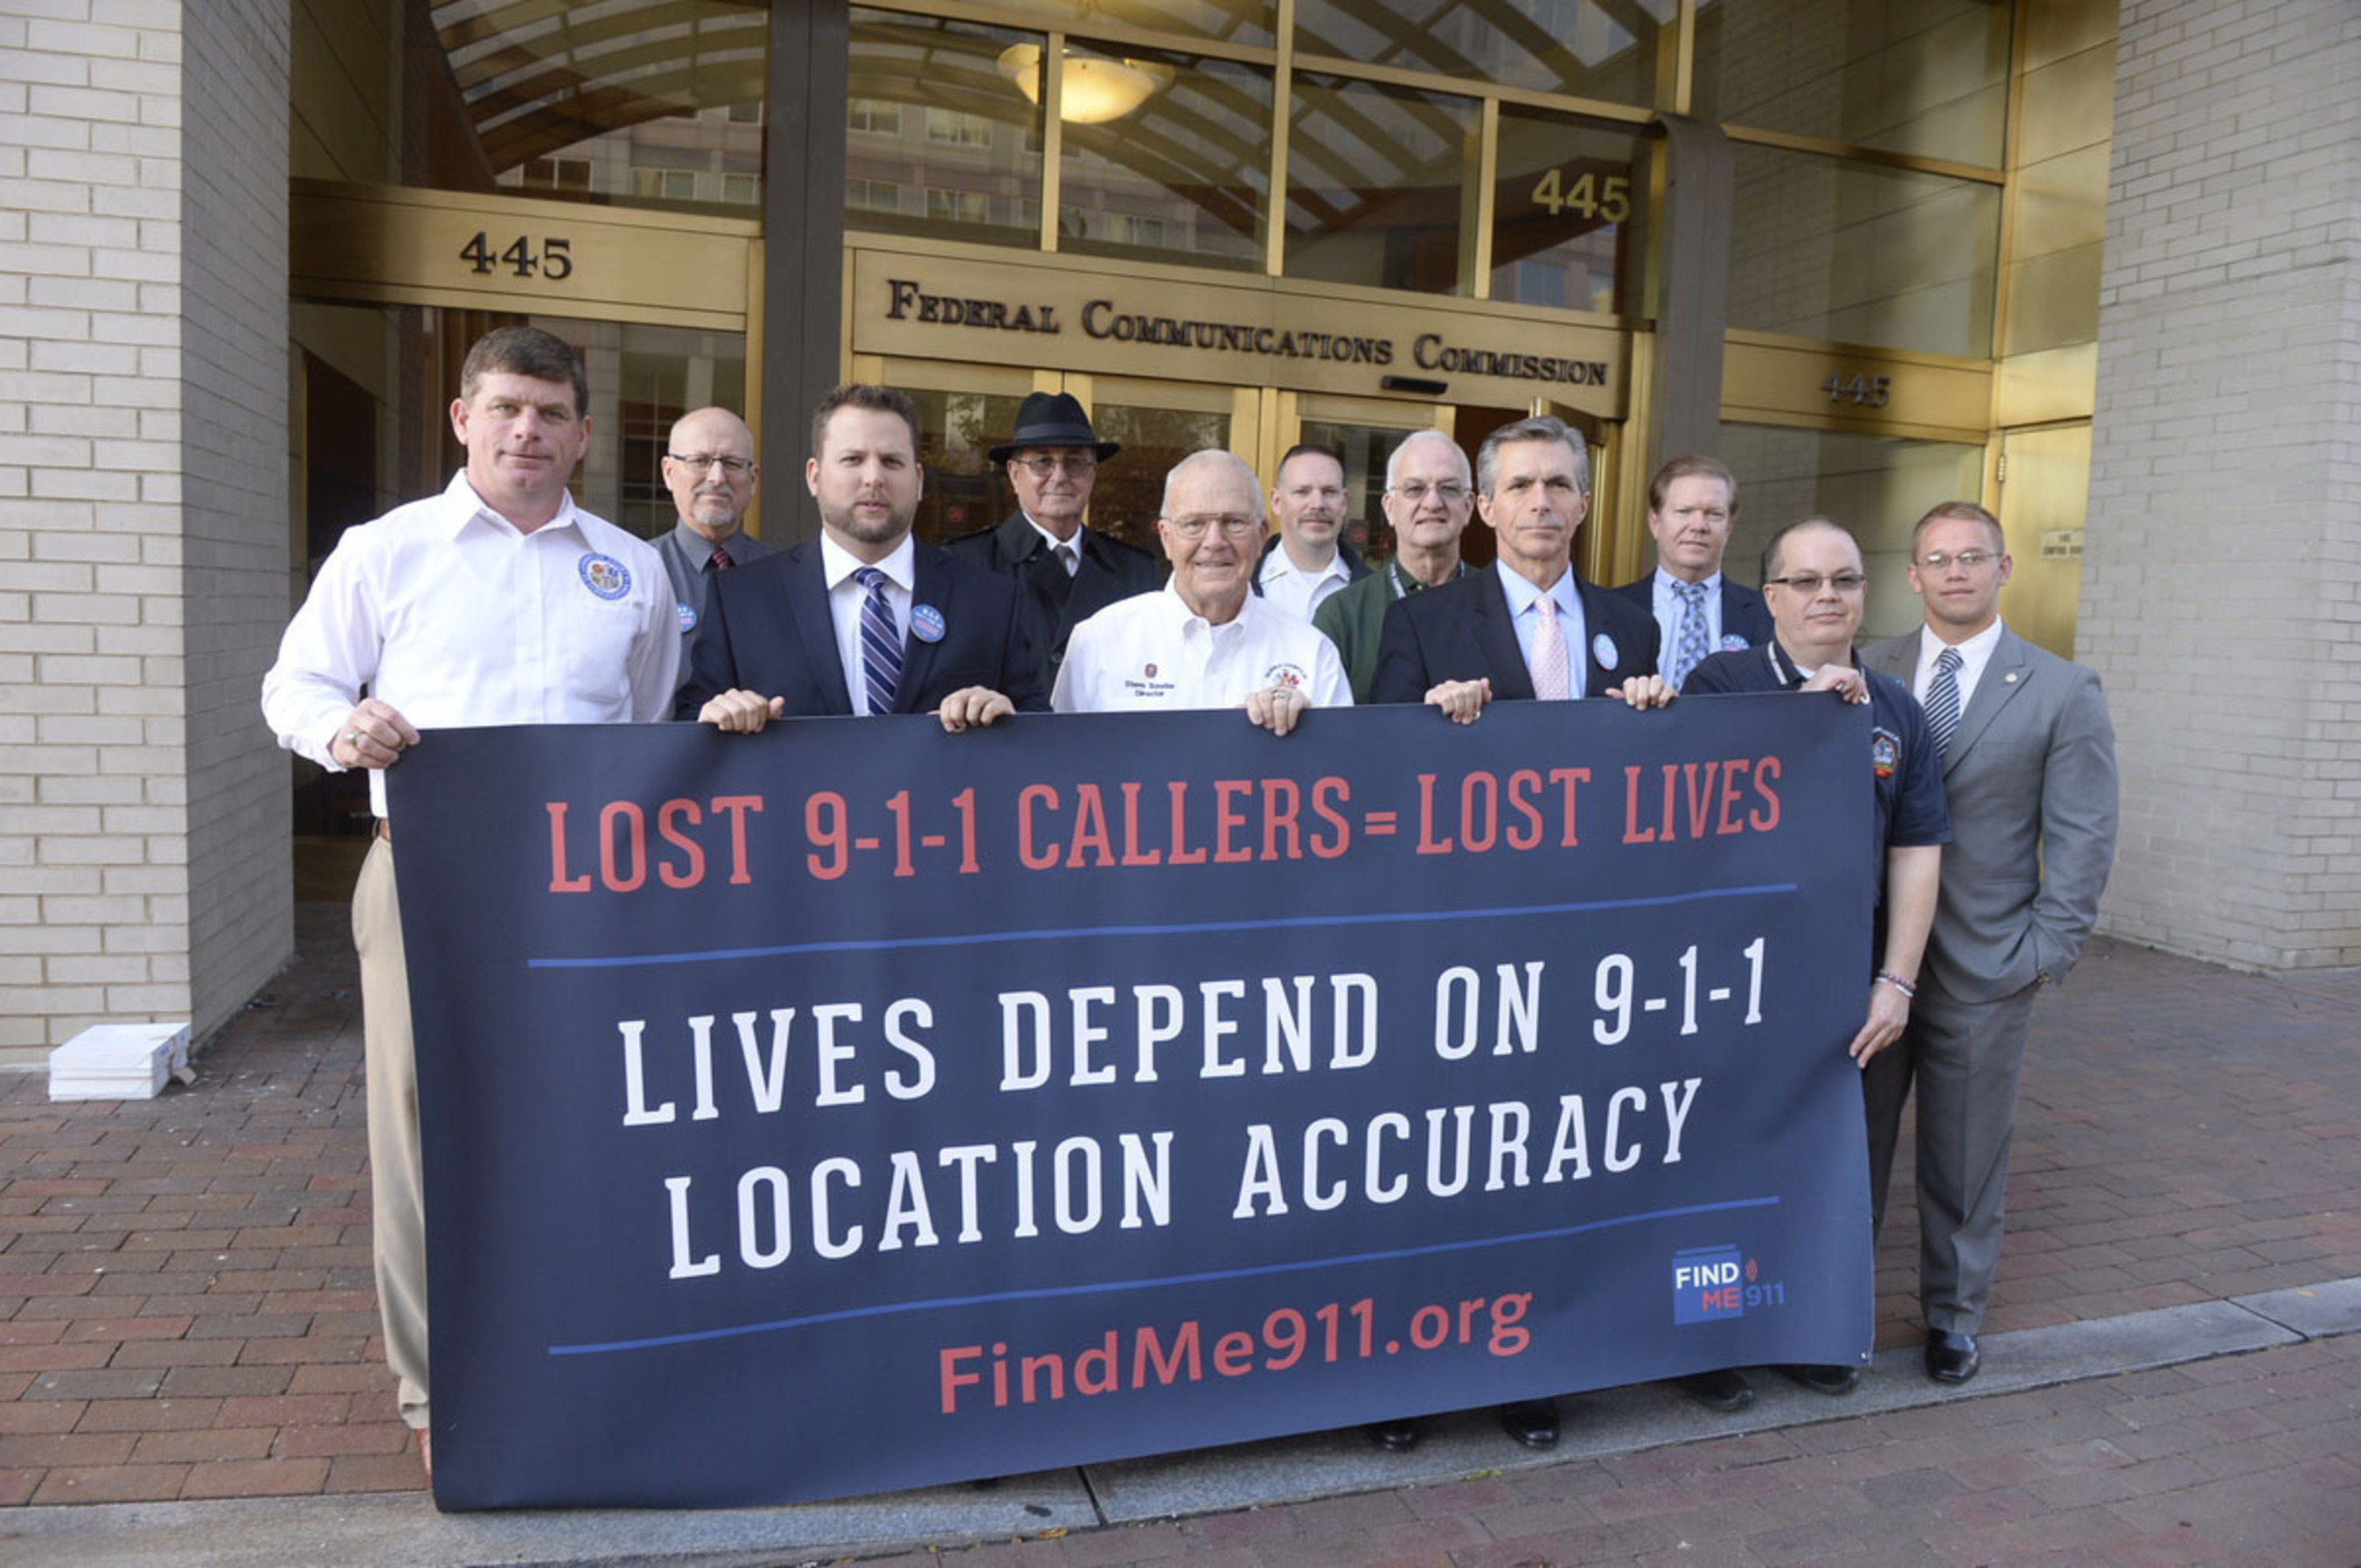 Jason Barbour, 911 Director for Johnston County, North Carolina, joins public safety leaders at event in Washington on November 18th to urge the FCC to improve 9-1-1 location accuracy.chart. (PRNewsFoto/Find Me 911 Coalition)